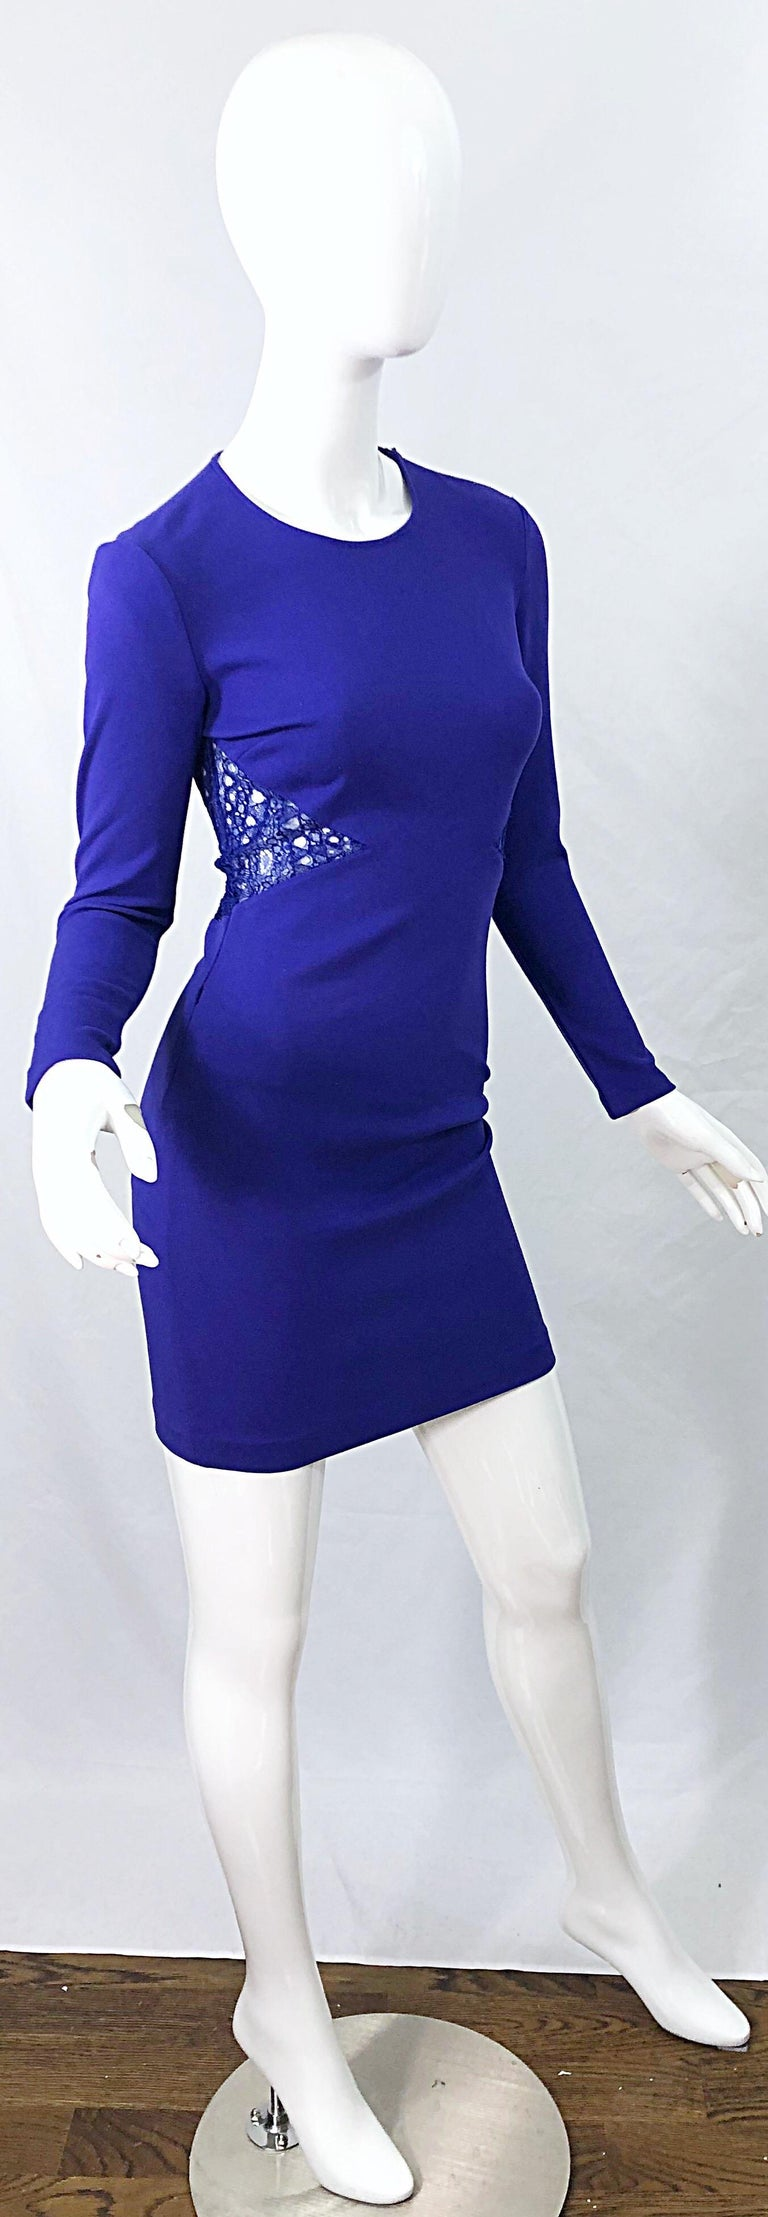 Emilio Pucci Fall 2012 Purple Rayon Lace Cut Out Long Sleeve Bodycon Dress For Sale 2